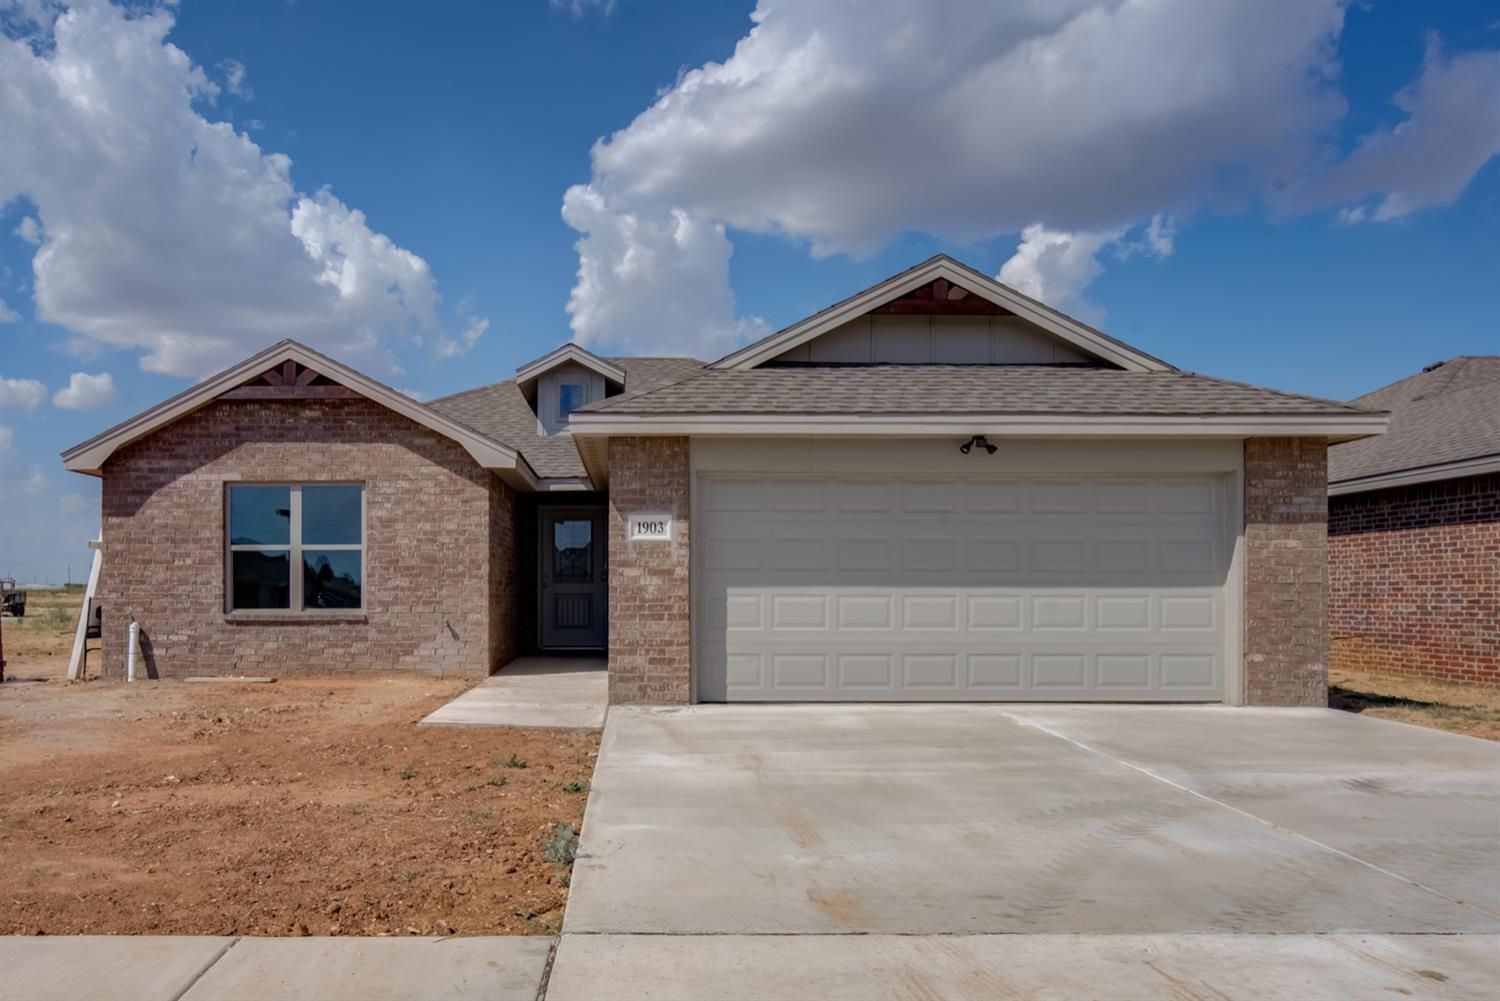 Brand new 3/2/2 built by Mission Homes. The well appointed kitchen has granite counters & appliances will be installed before closing. This well designed plan offers a spacious Master along with 2 additional bedrooms. You'll also enjoy vinyl plank flooring throughout. Mission Homes founder, Lal Williams, has more than 10 years experience in construction and is now bringing his passion for construction and mission work to the home building industry.